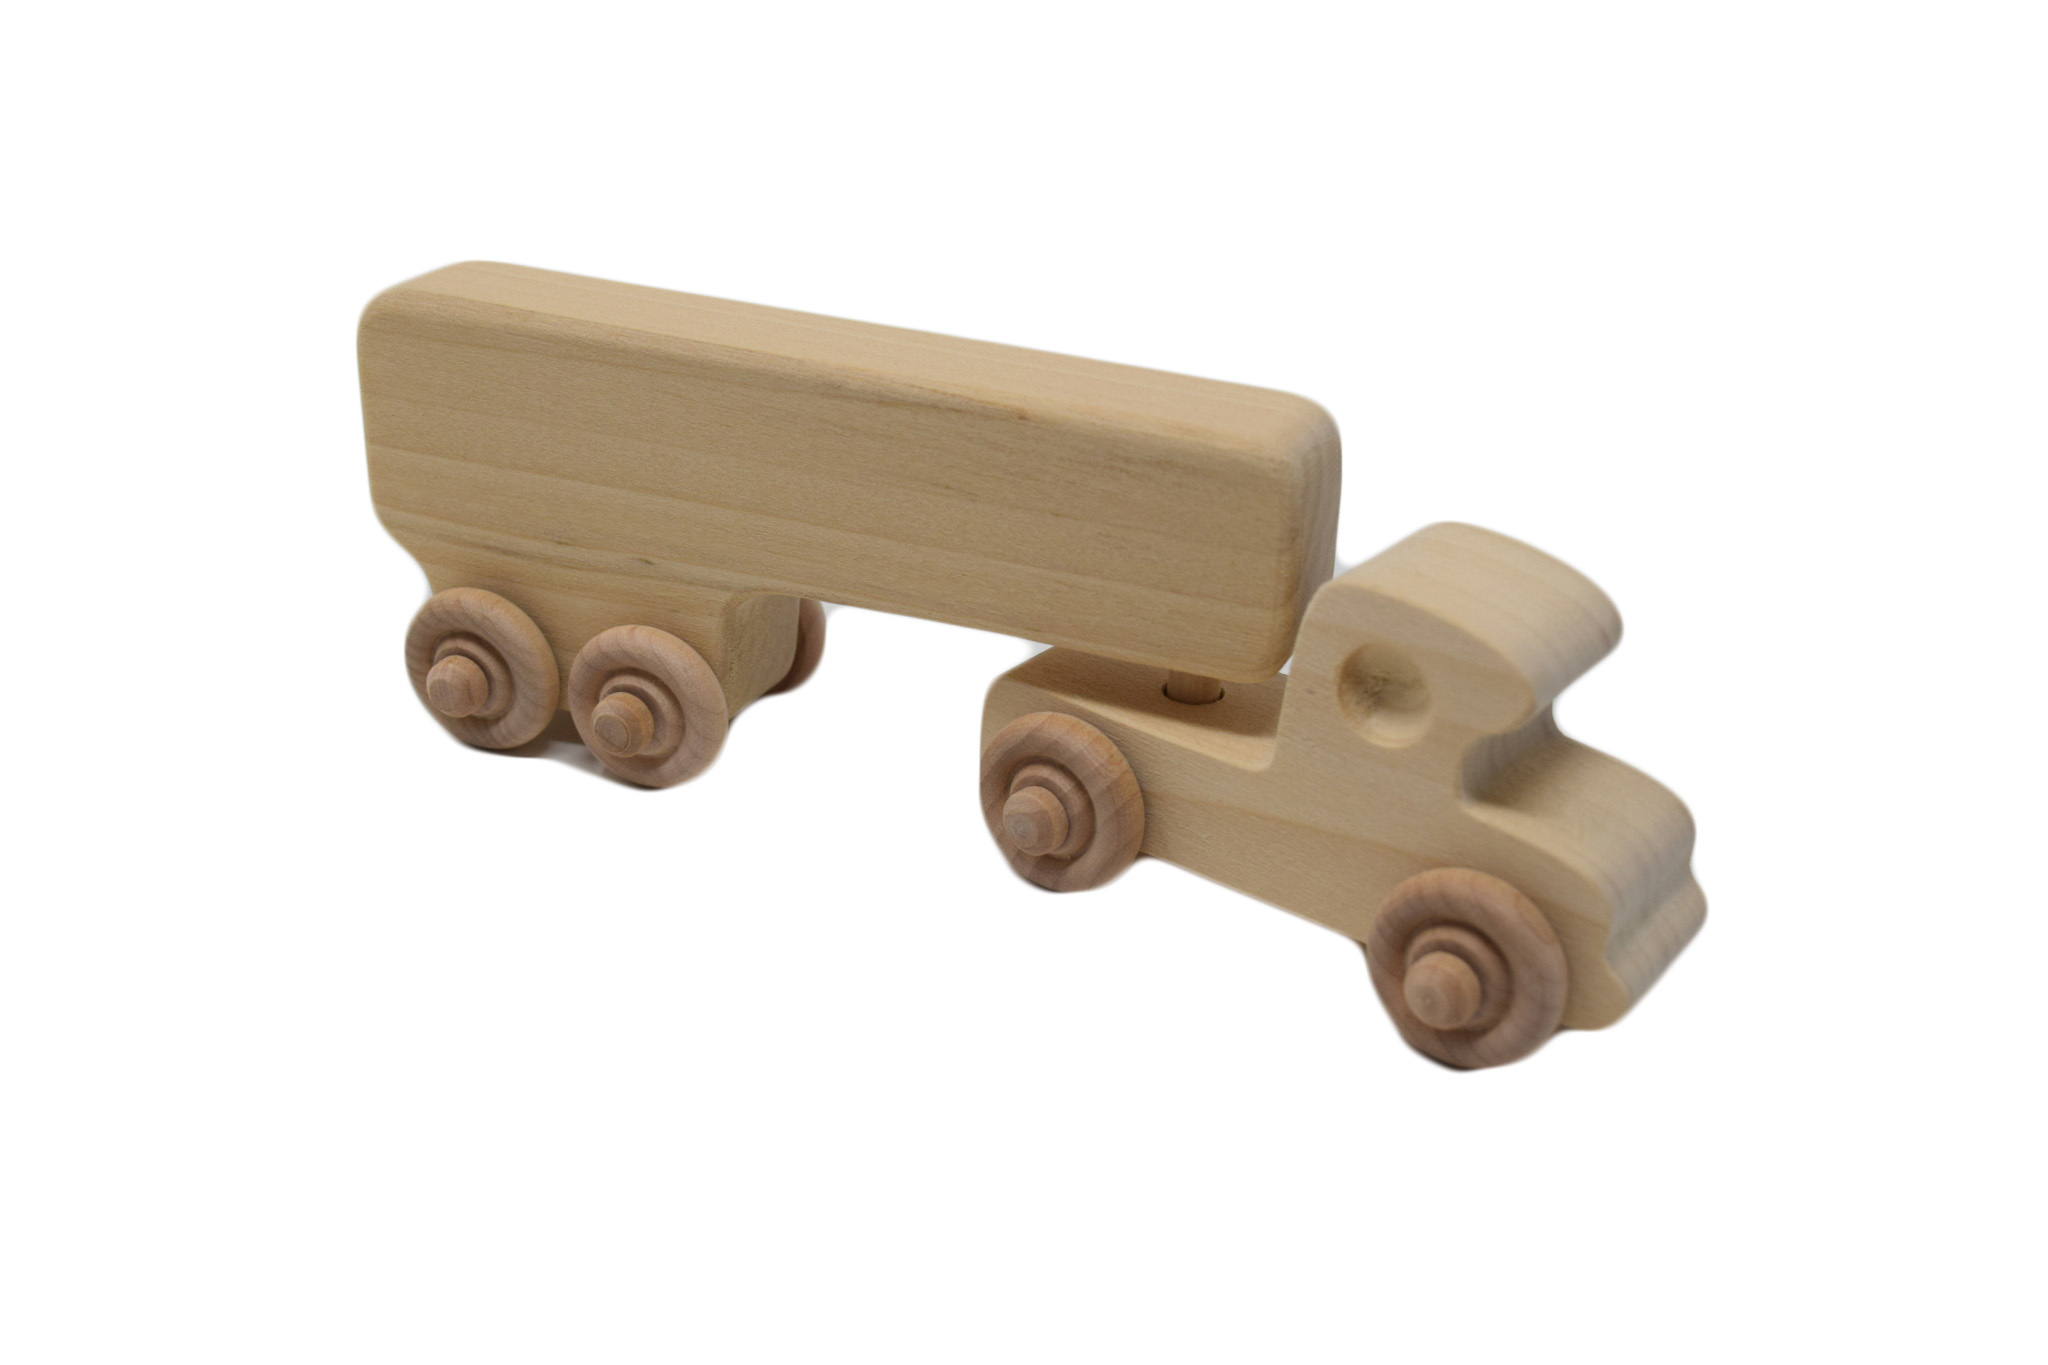 Wooden Box Truck Toy-1